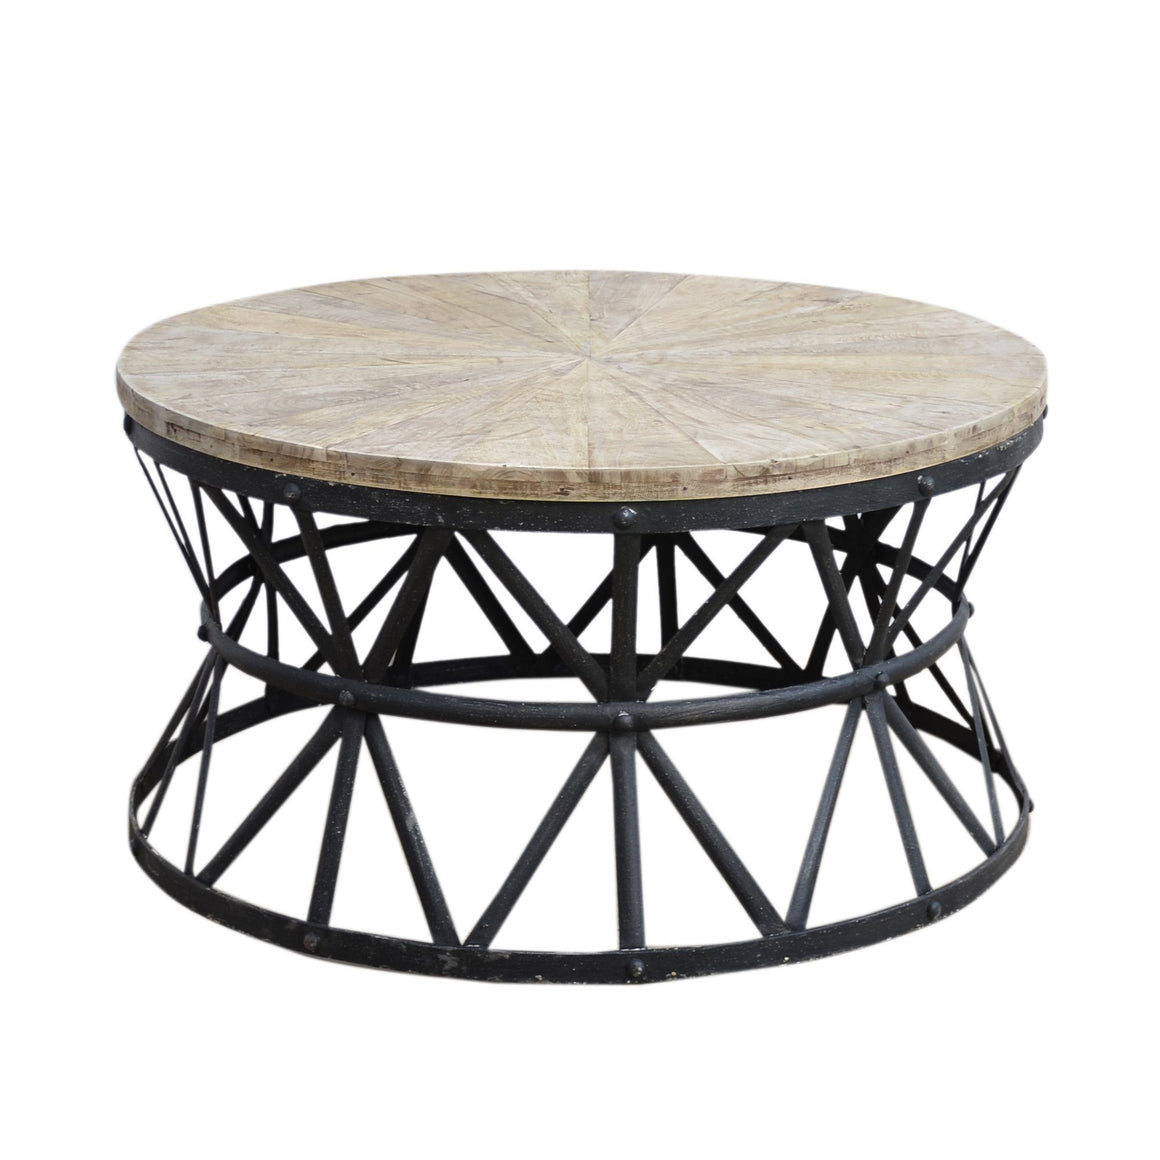 CAST IRON ROUND COFFEE TABLE HANDMADE Philbee Interiors